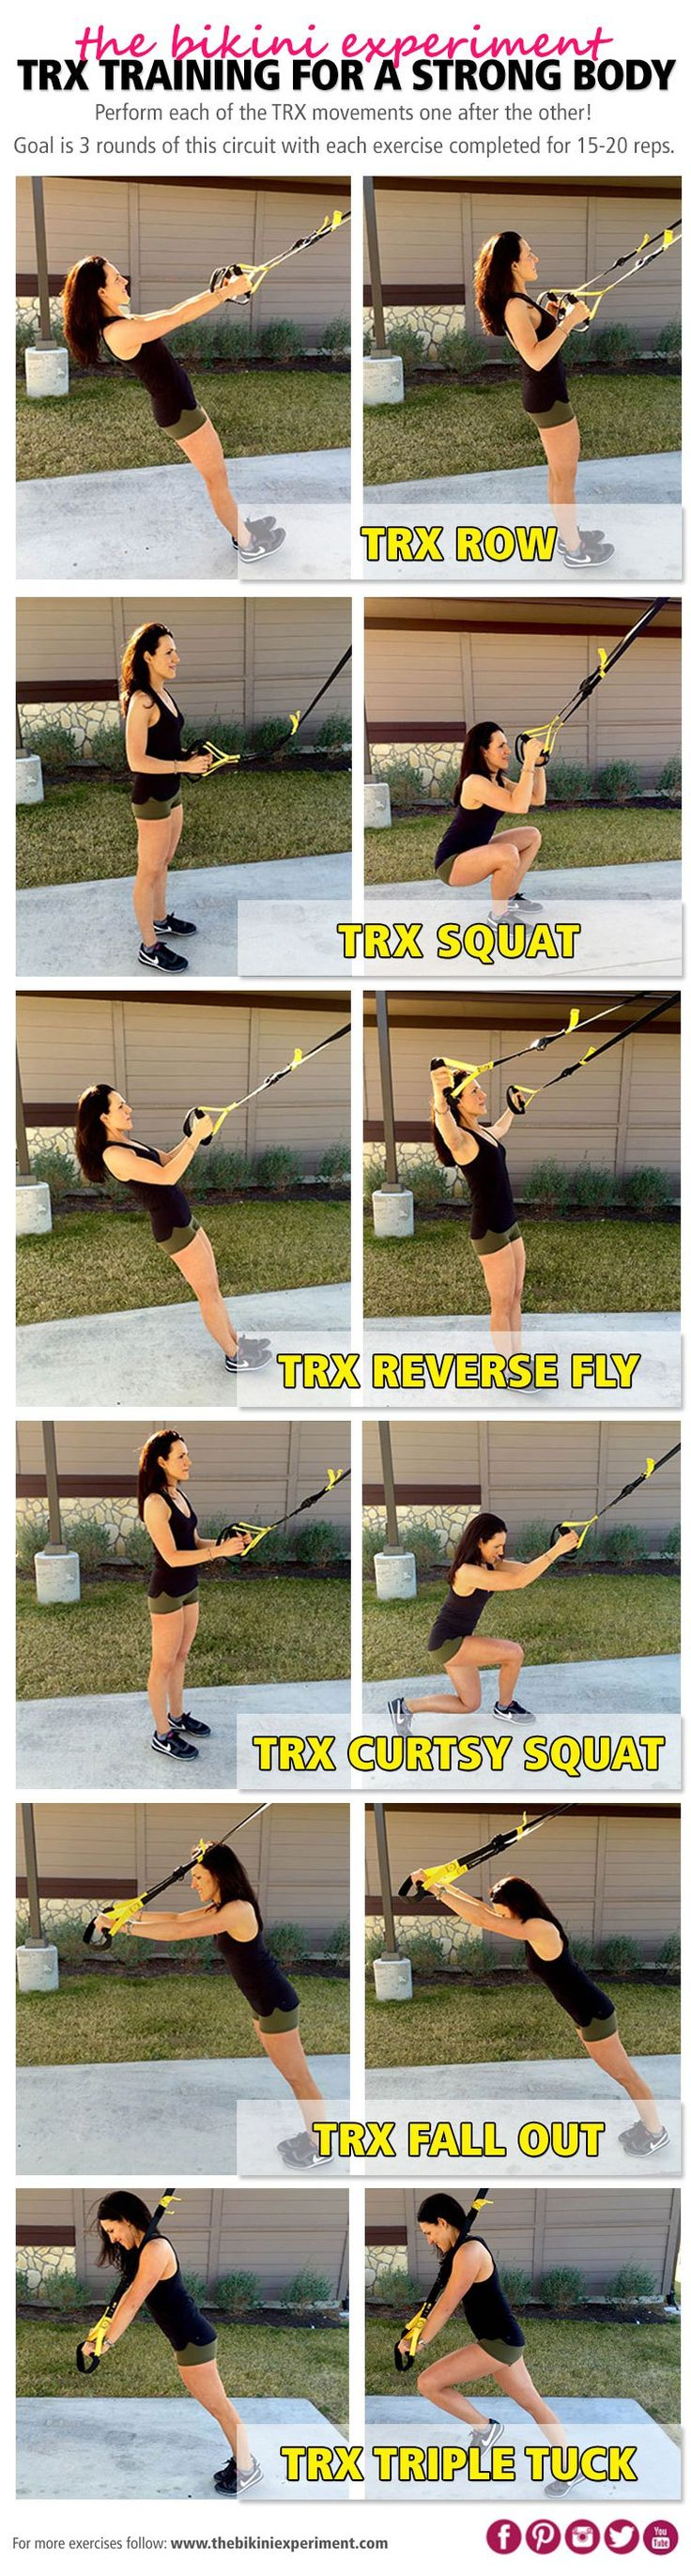 TRX Training for a Strong Body